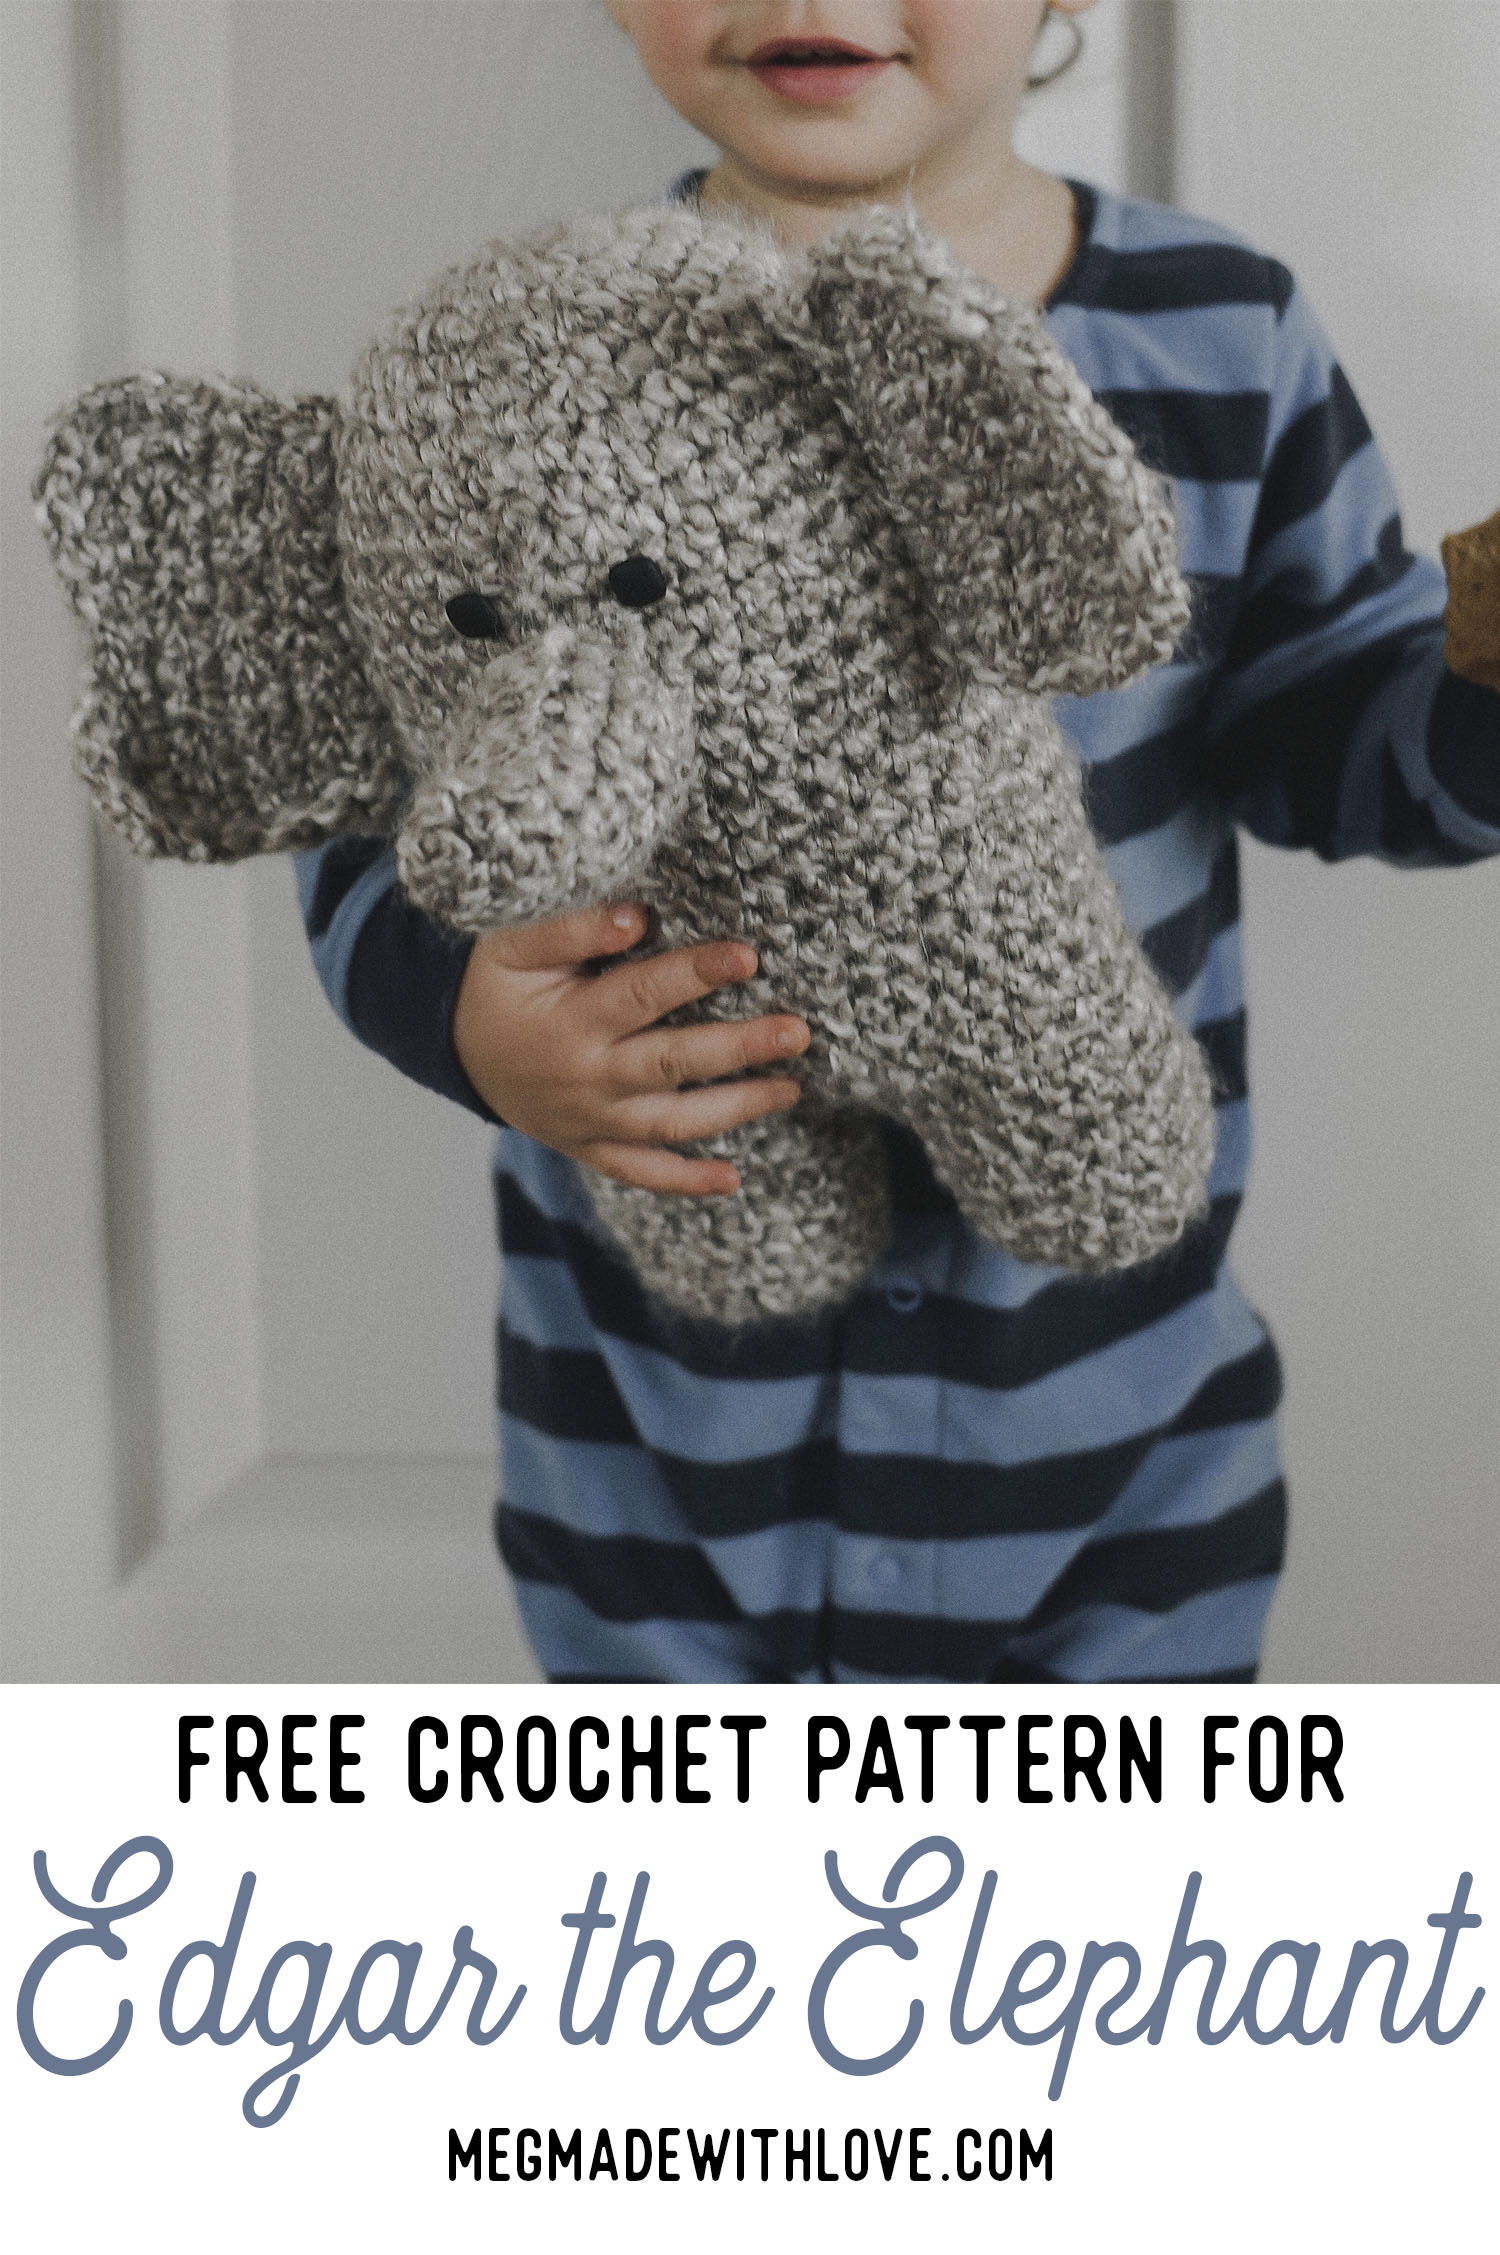 Free Pattern for a Crochet Elephant - Megmade with Love